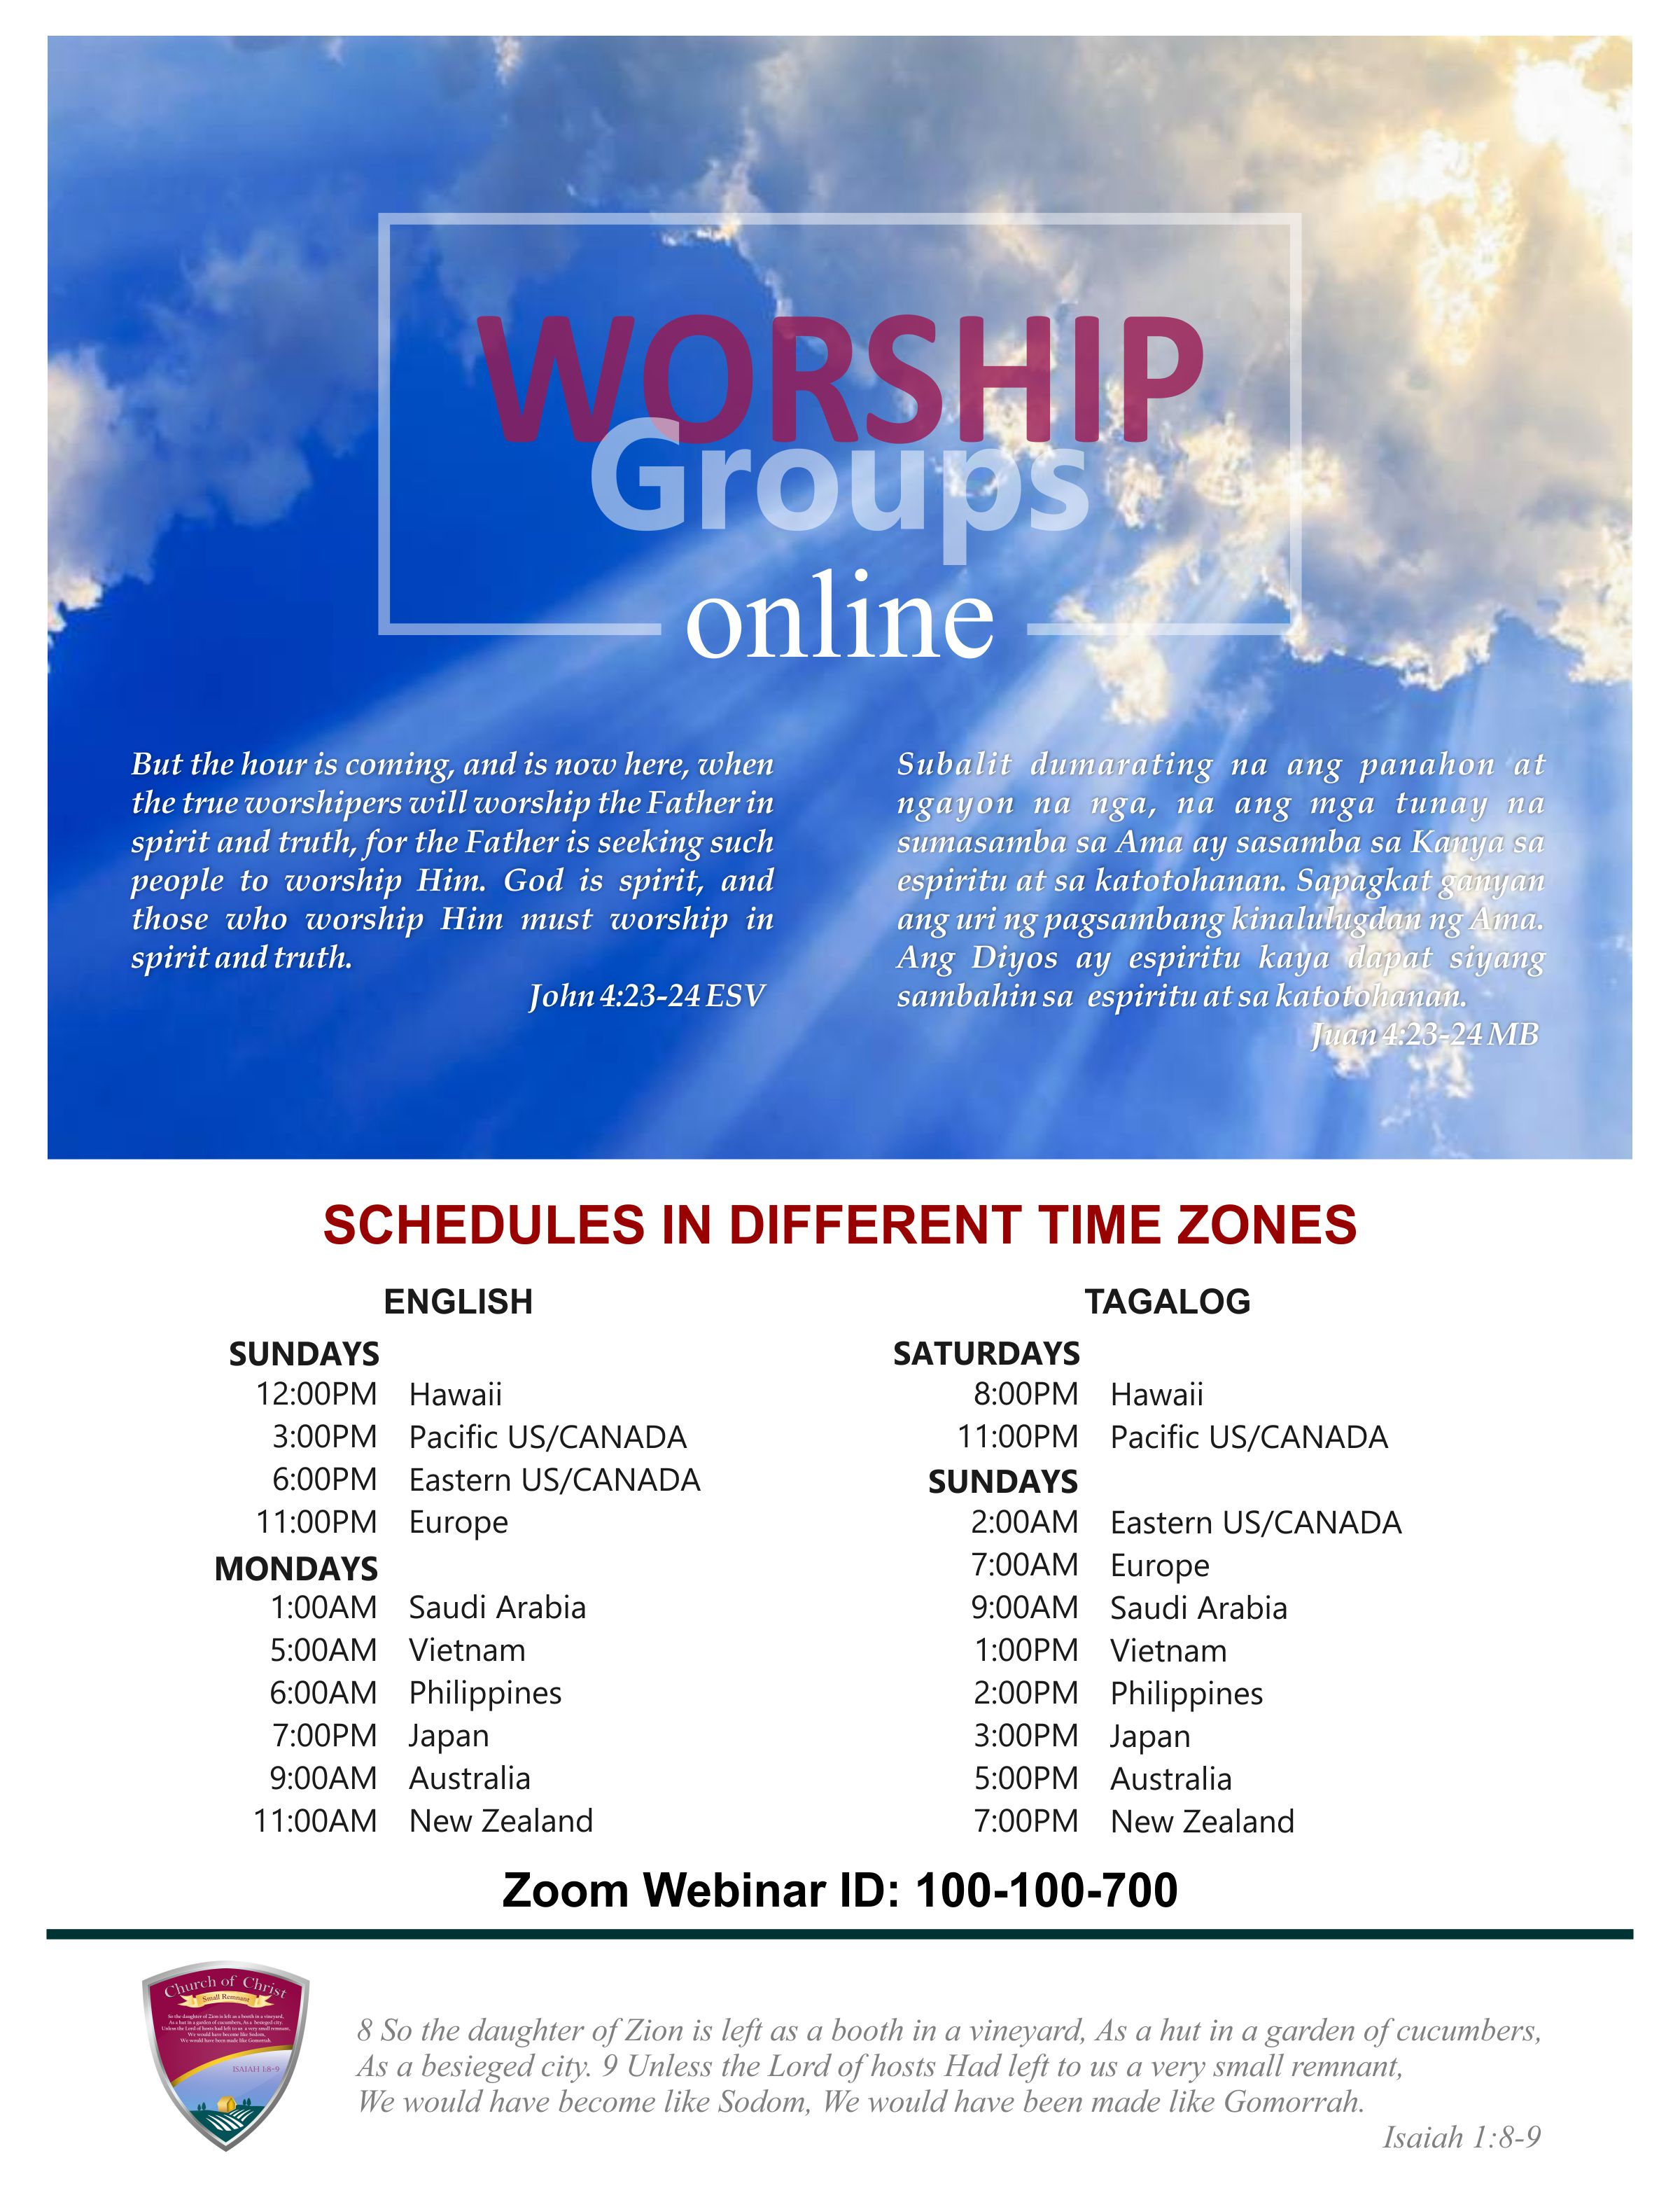 Church of Christ Small Remnant - [2018 04 29] Online Worship Service